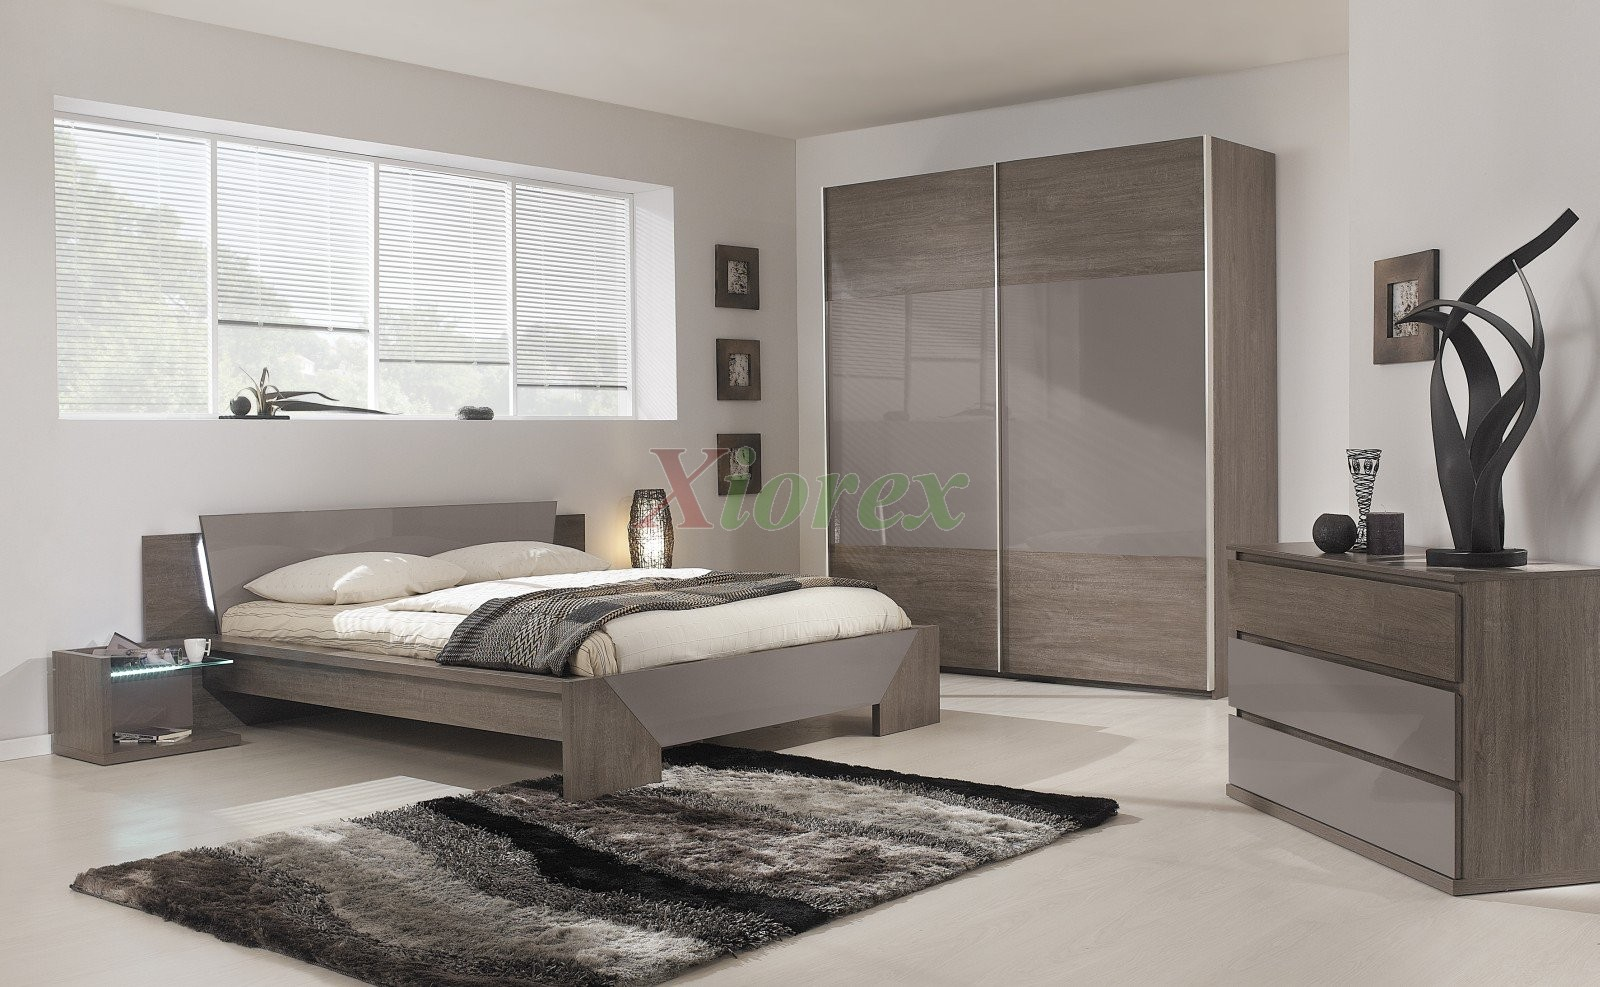 Modern bed gami trapeze bed set modern bedroom set by gautier xiorex for Contemporary bedroom furniture